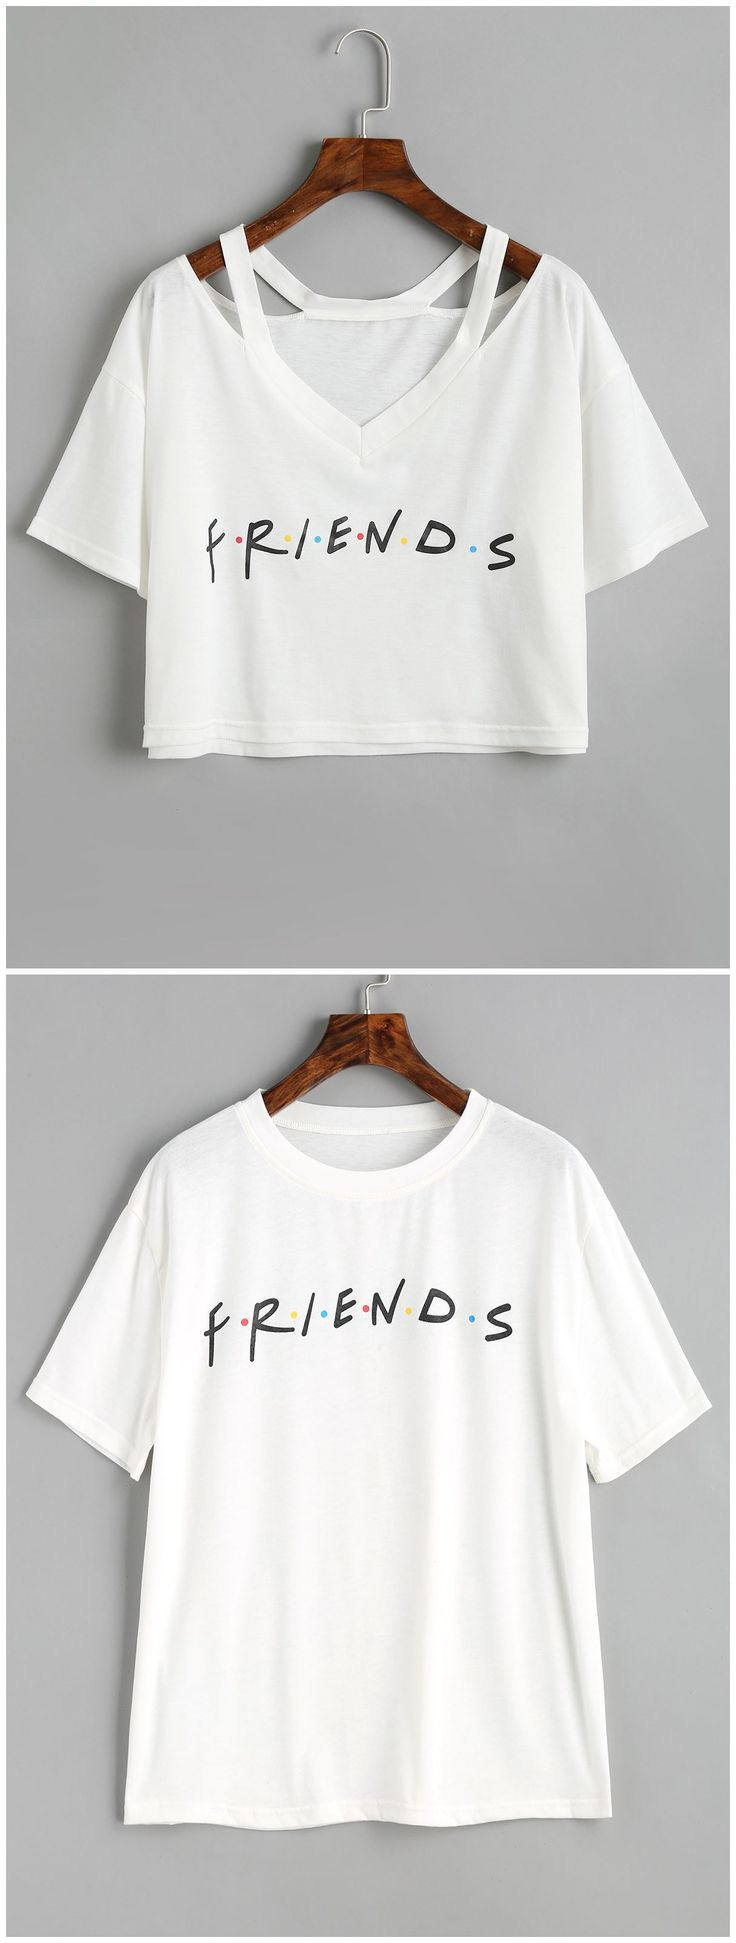 Up to 80% OFF! Contrasting Dots Letter T Shirt. #Zaful #Tops zaful,zaful outfits,tops,womens tops,long sleeve tops,blouse,blouse outfit,off shoulder blouse,embroidered blouse,floral blouse,shirts,T-shirt,Tees,tank tops,crop top,outfits,women fashion,summer outfits,spring outfits,spring fashion,girl clothing,outfit ideas,clothes,clothing,casual,casual outfits,2018 fashion,2018 trends,christmas2017,christmas outfits,xmas,New Year Eve, New Year 2017.@zaful Extra 10% OFF Code:ZF2017